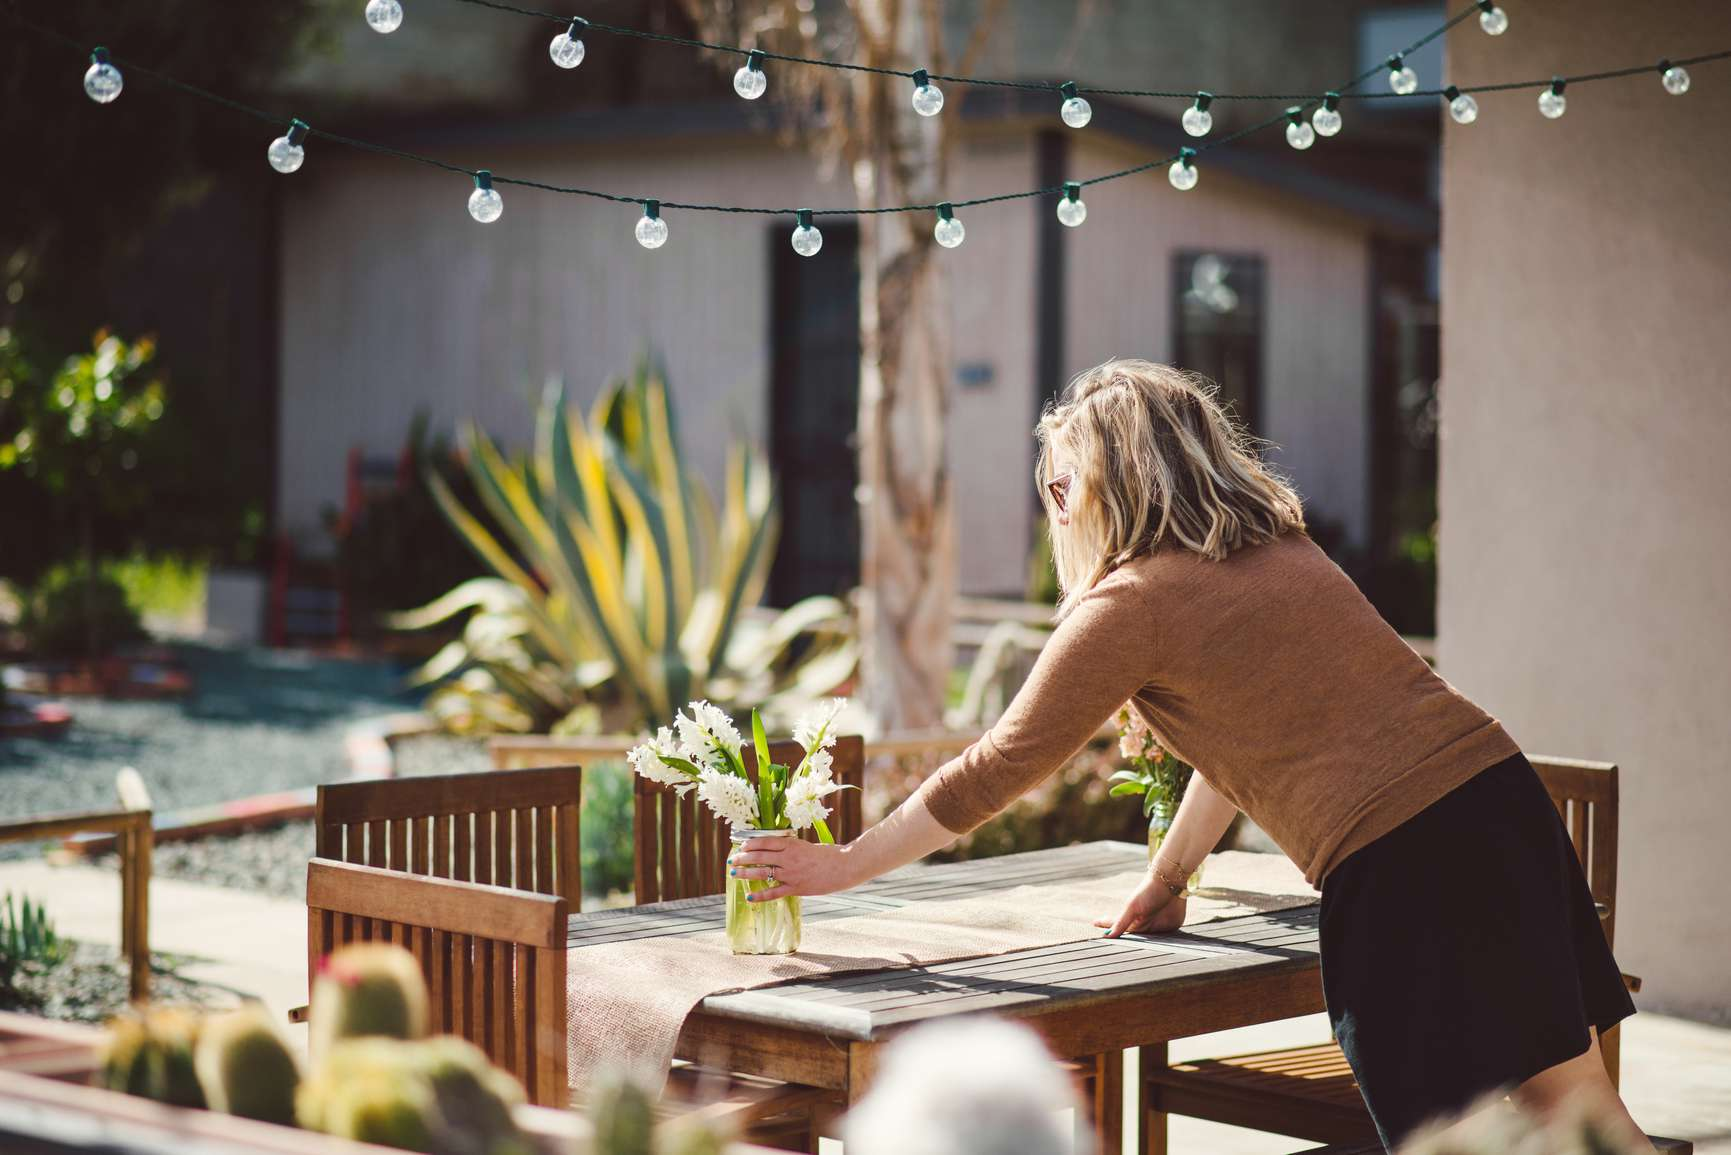 Woman placing plant on outside table with strand of hanging lights above..